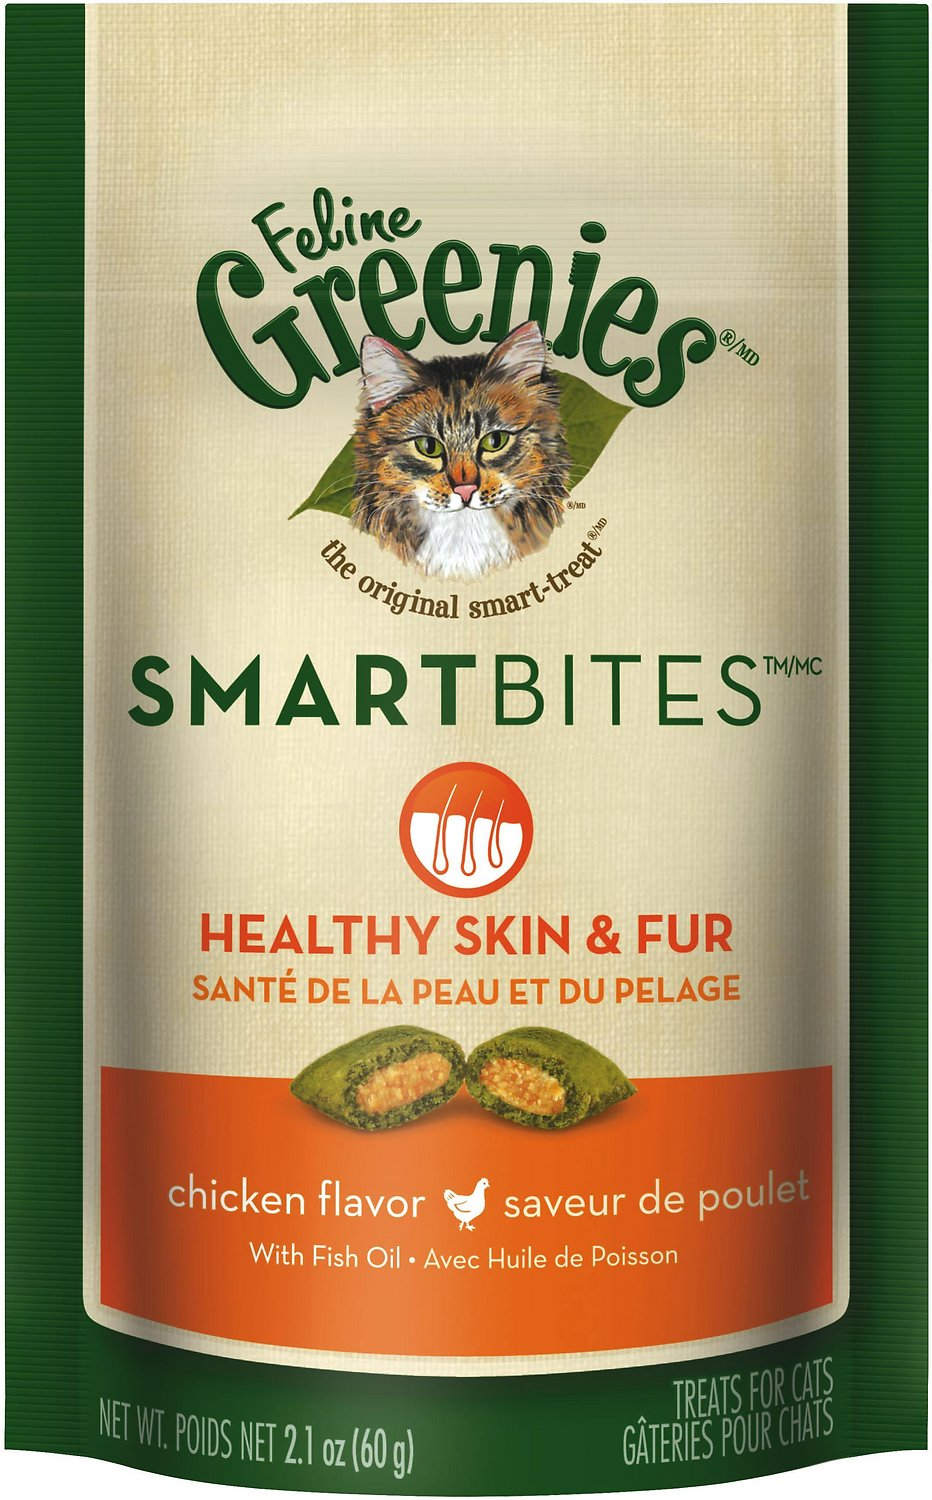 Feline Greenies SmartBites Healthy Skin & Fur Chicken Flavor Cat Treats, 2.1-oz bag